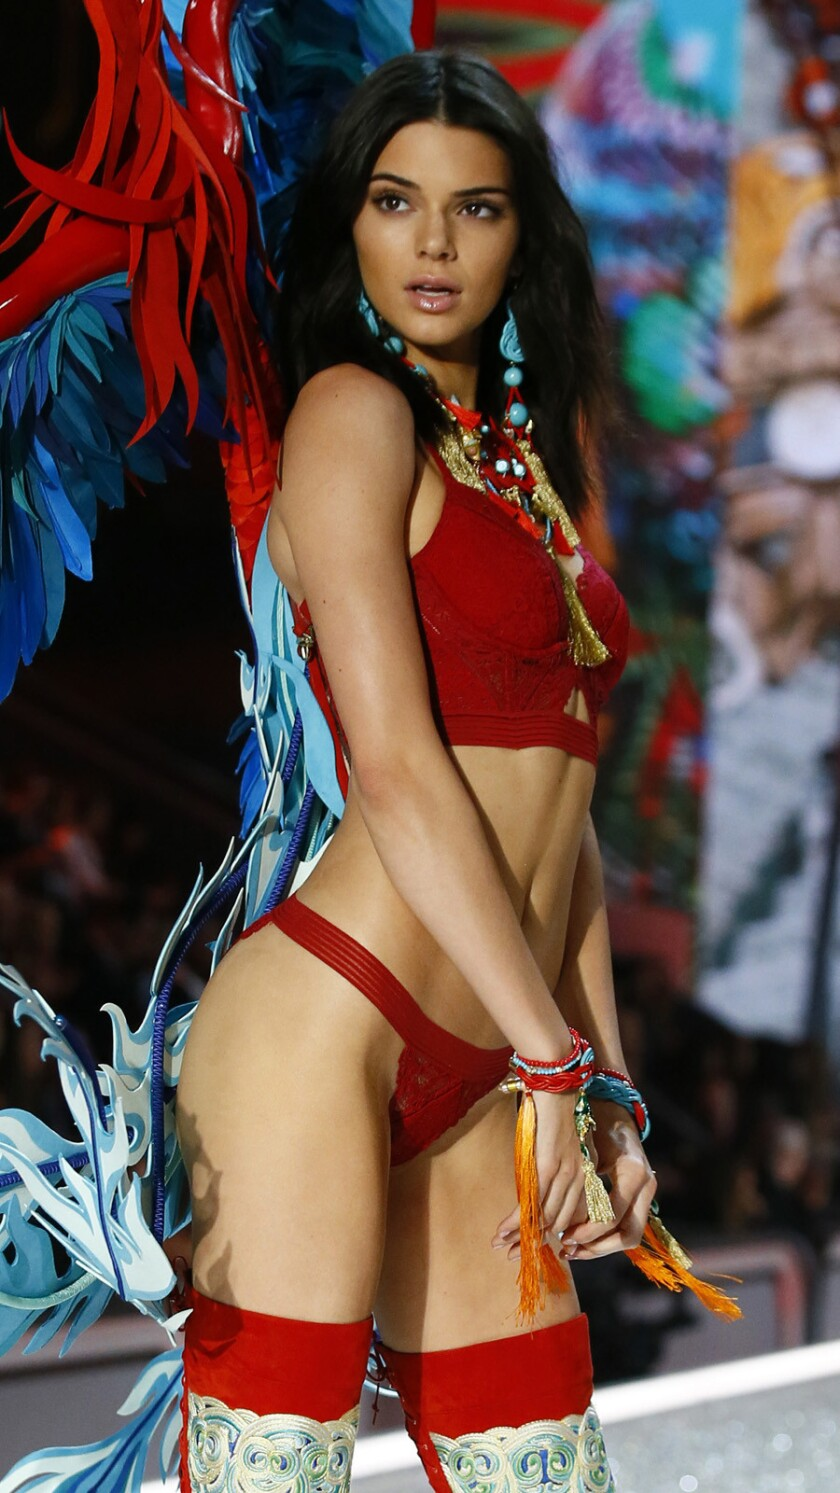 Kendall Jenner at the Victoria's Secret Fashion Show in Paris on Wednesday.